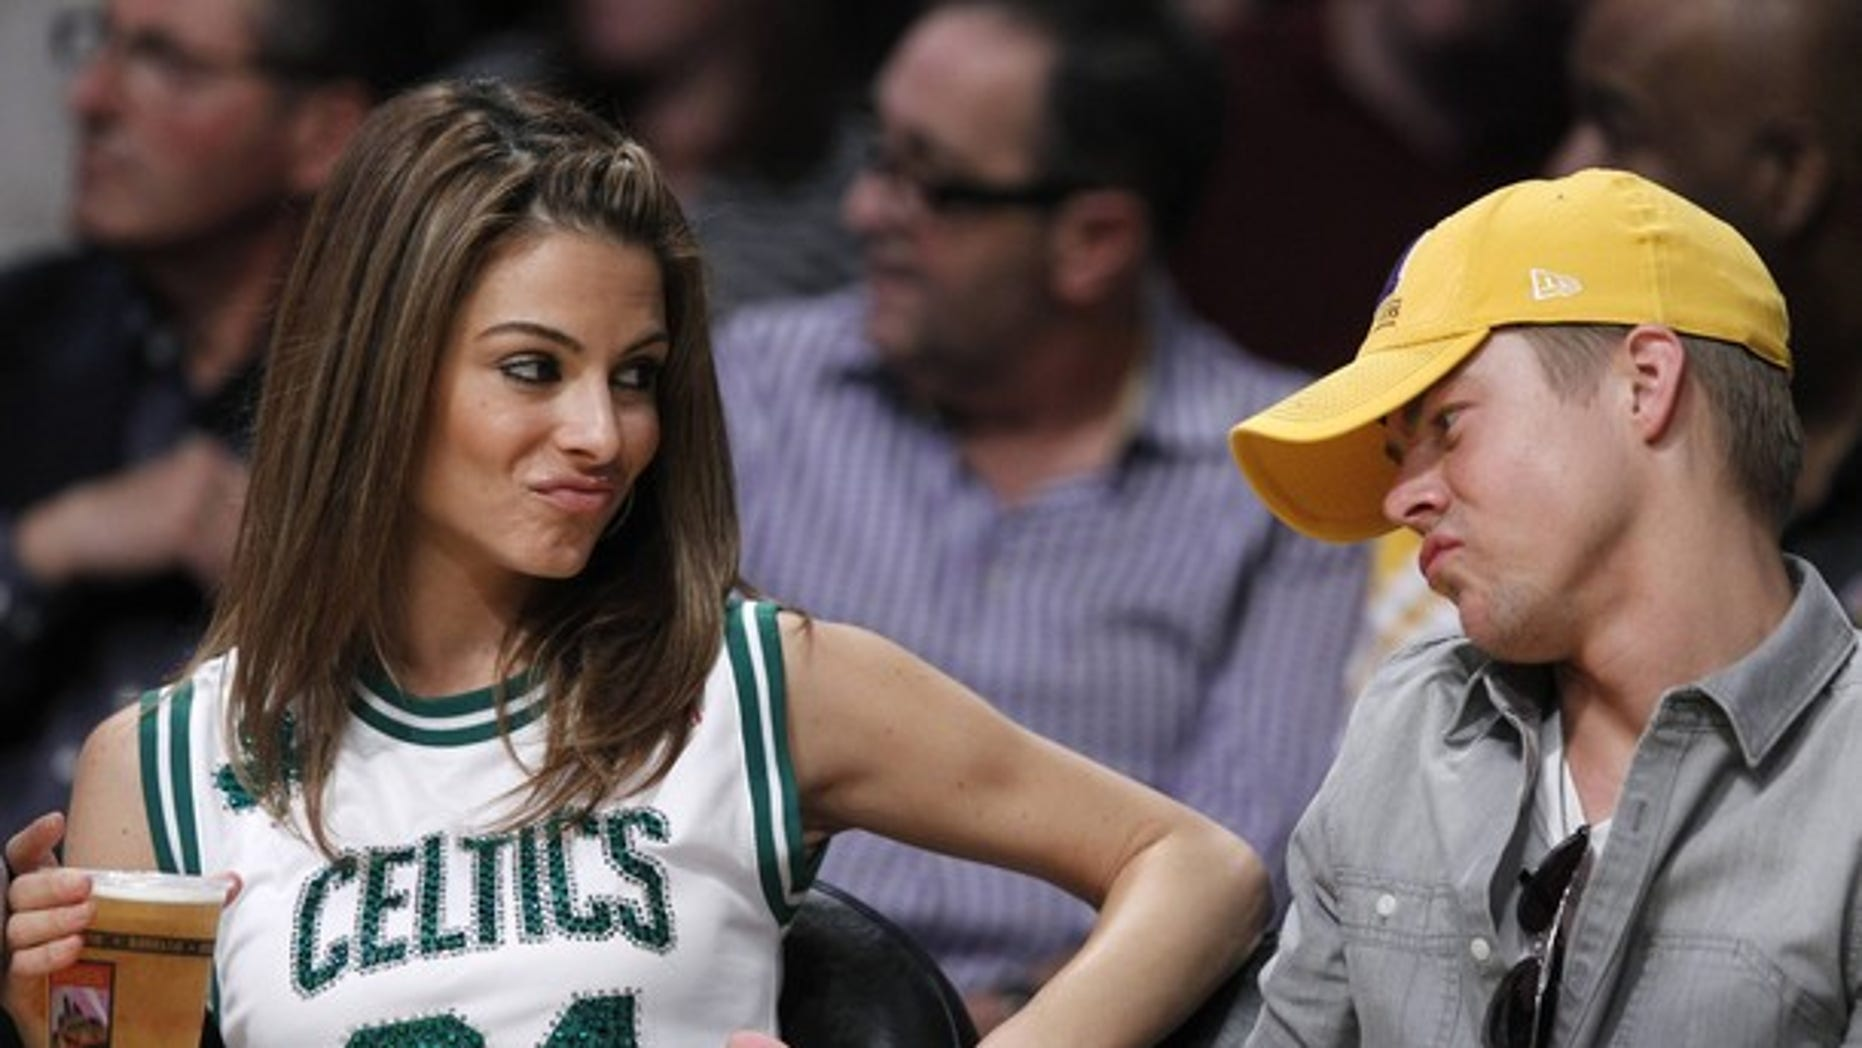 "Actress Maria Menounos and ""Dancing With the Stars"" pro Derek Hough sit courtside as the Boston Celtics play the Los Angeles Lakers during their NBA basketball game in Los Angeles, California March 11, 2012. REUTERS/Lucy Nicholson (UNITED STATES - Tags: SPORT BASKETBALL ENTERTAINMENT)"